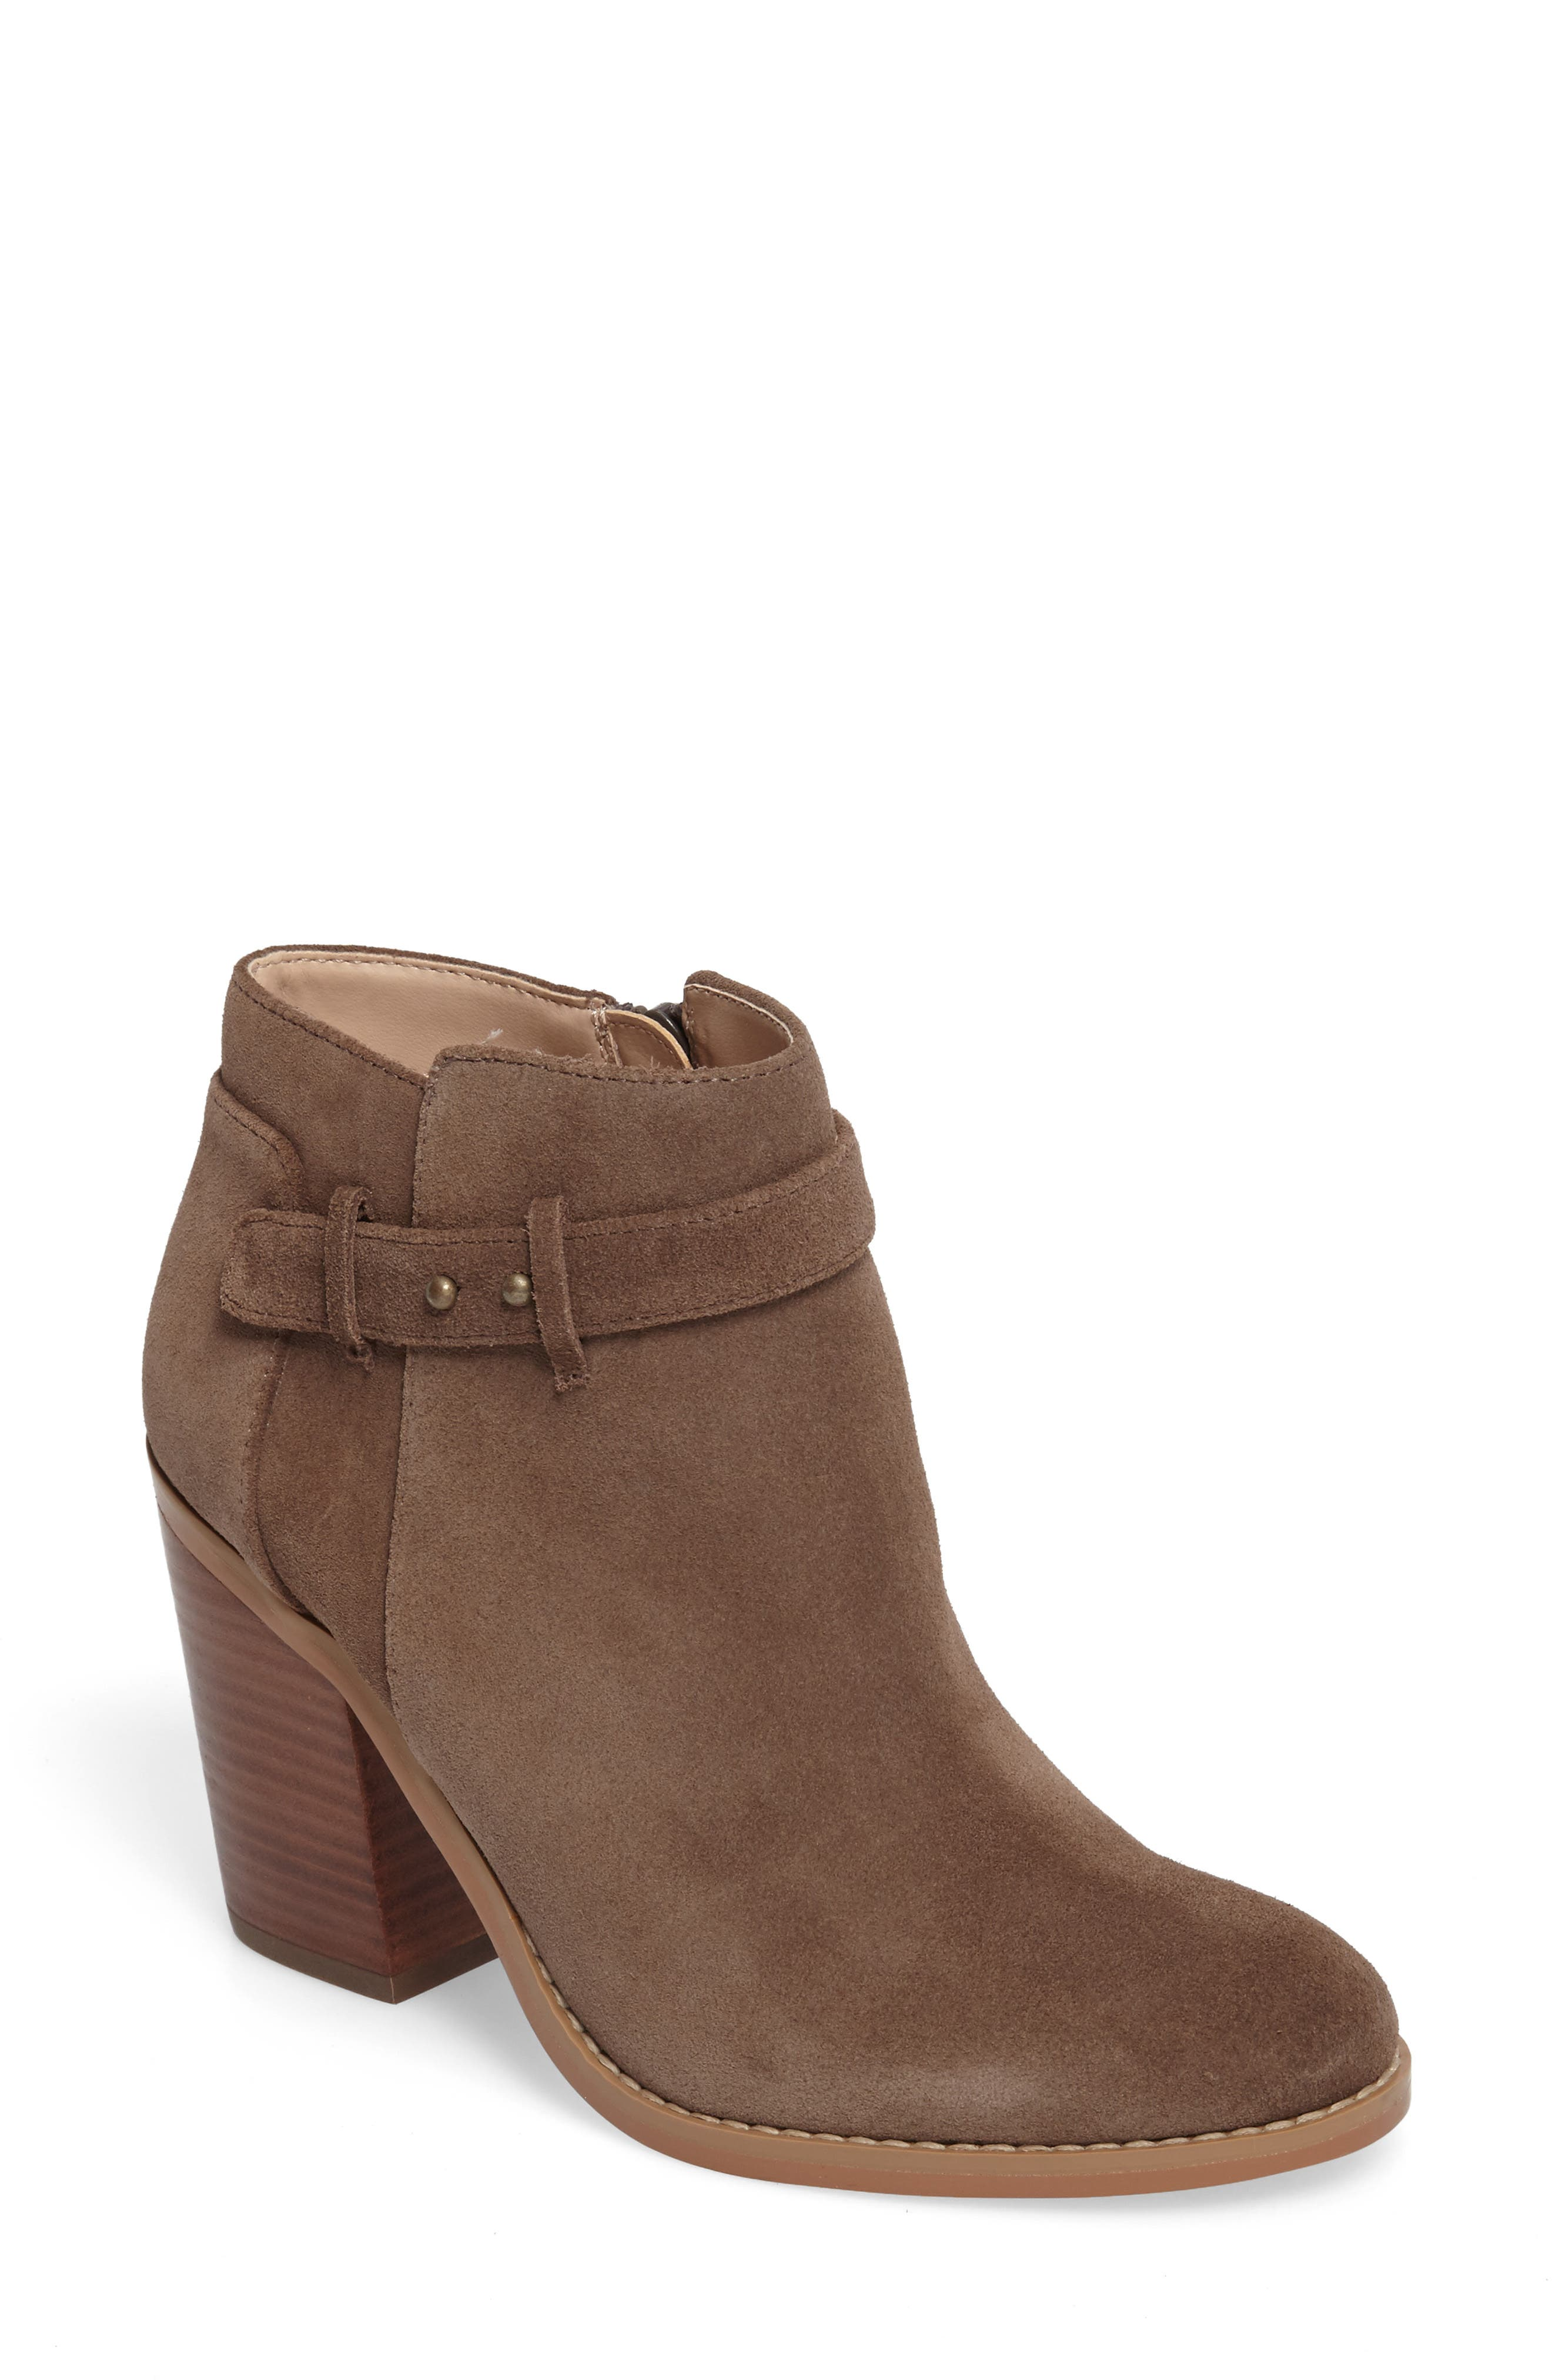 Alternate Image 1 Selected - Sole Society 'Lyriq' Bootie (Women)